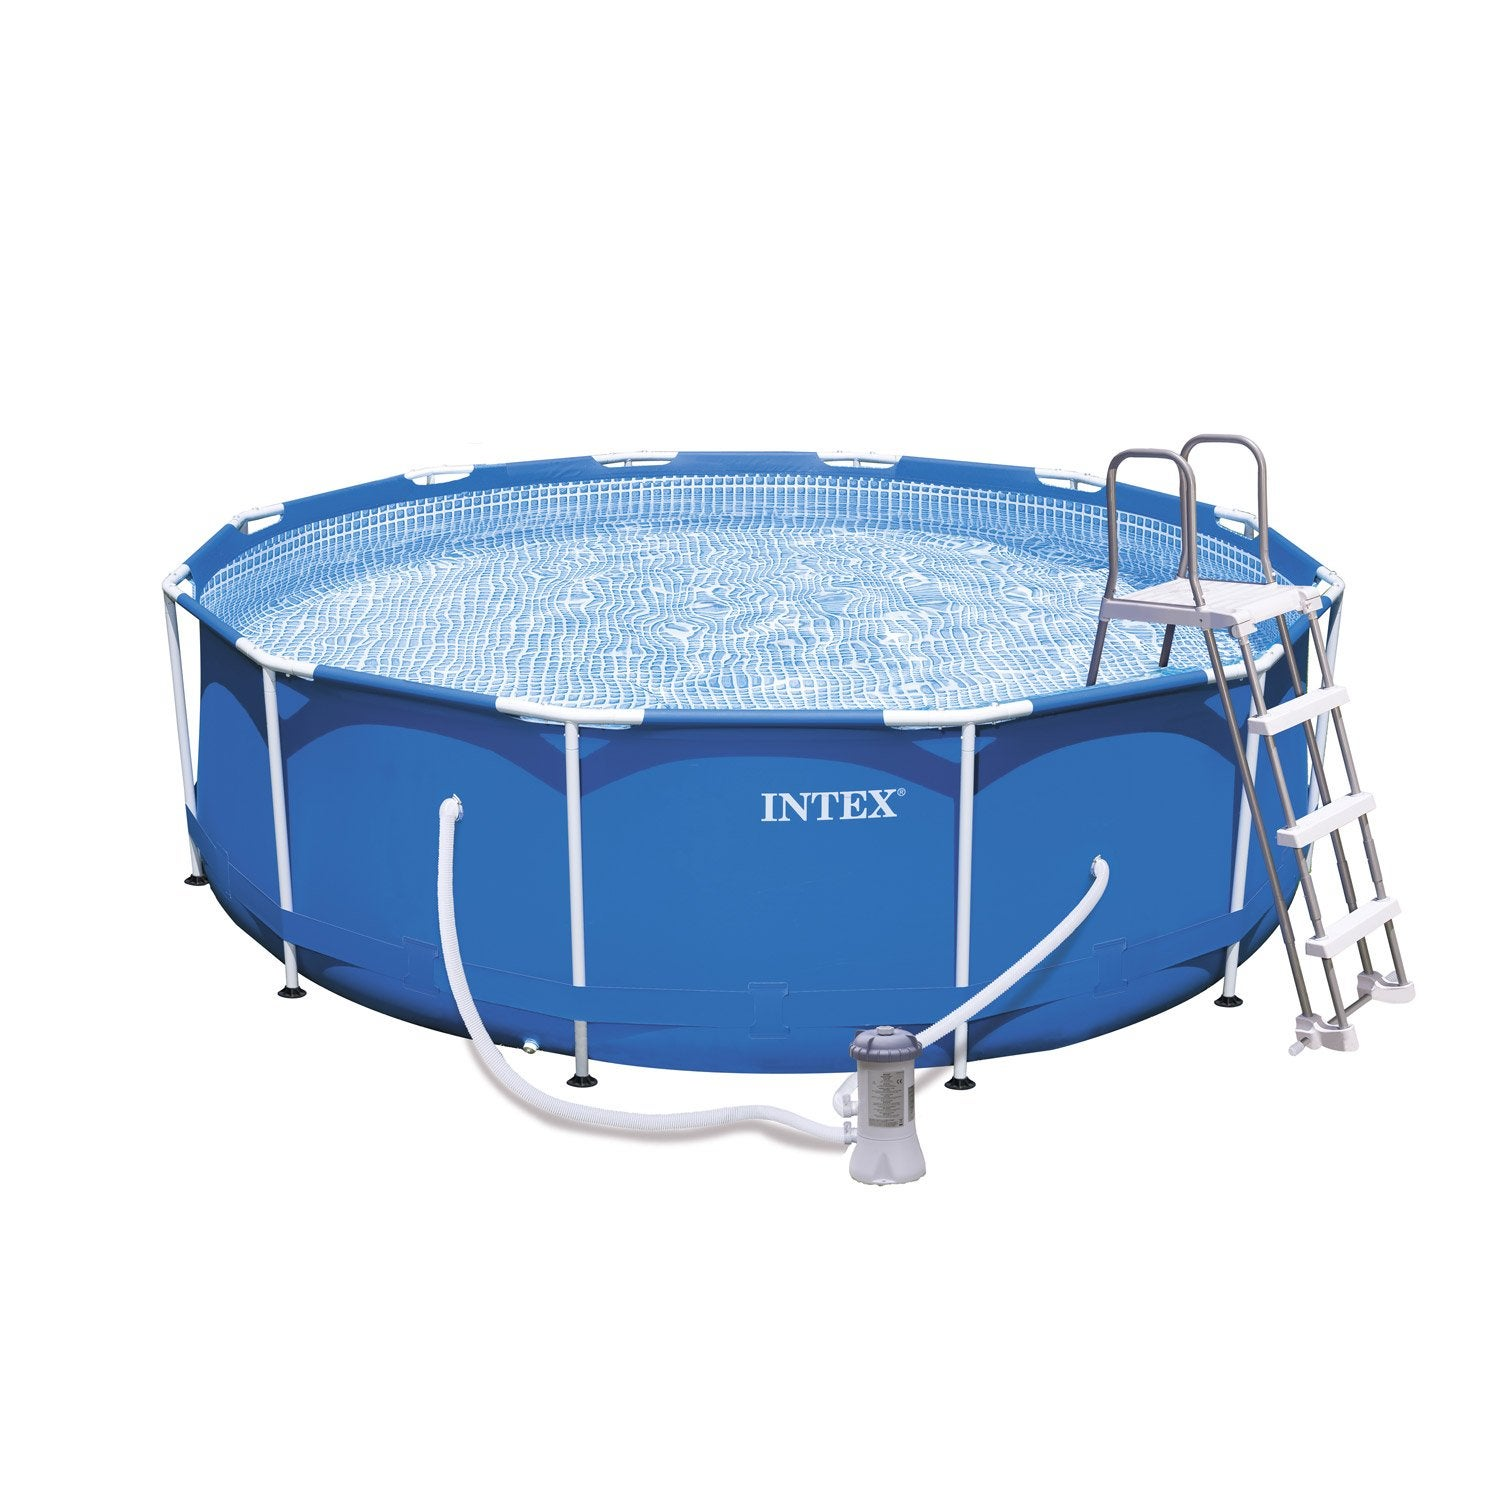 Piscine hors sol autoportante tubulaire m tal frame intex for Piscine hors sol intex